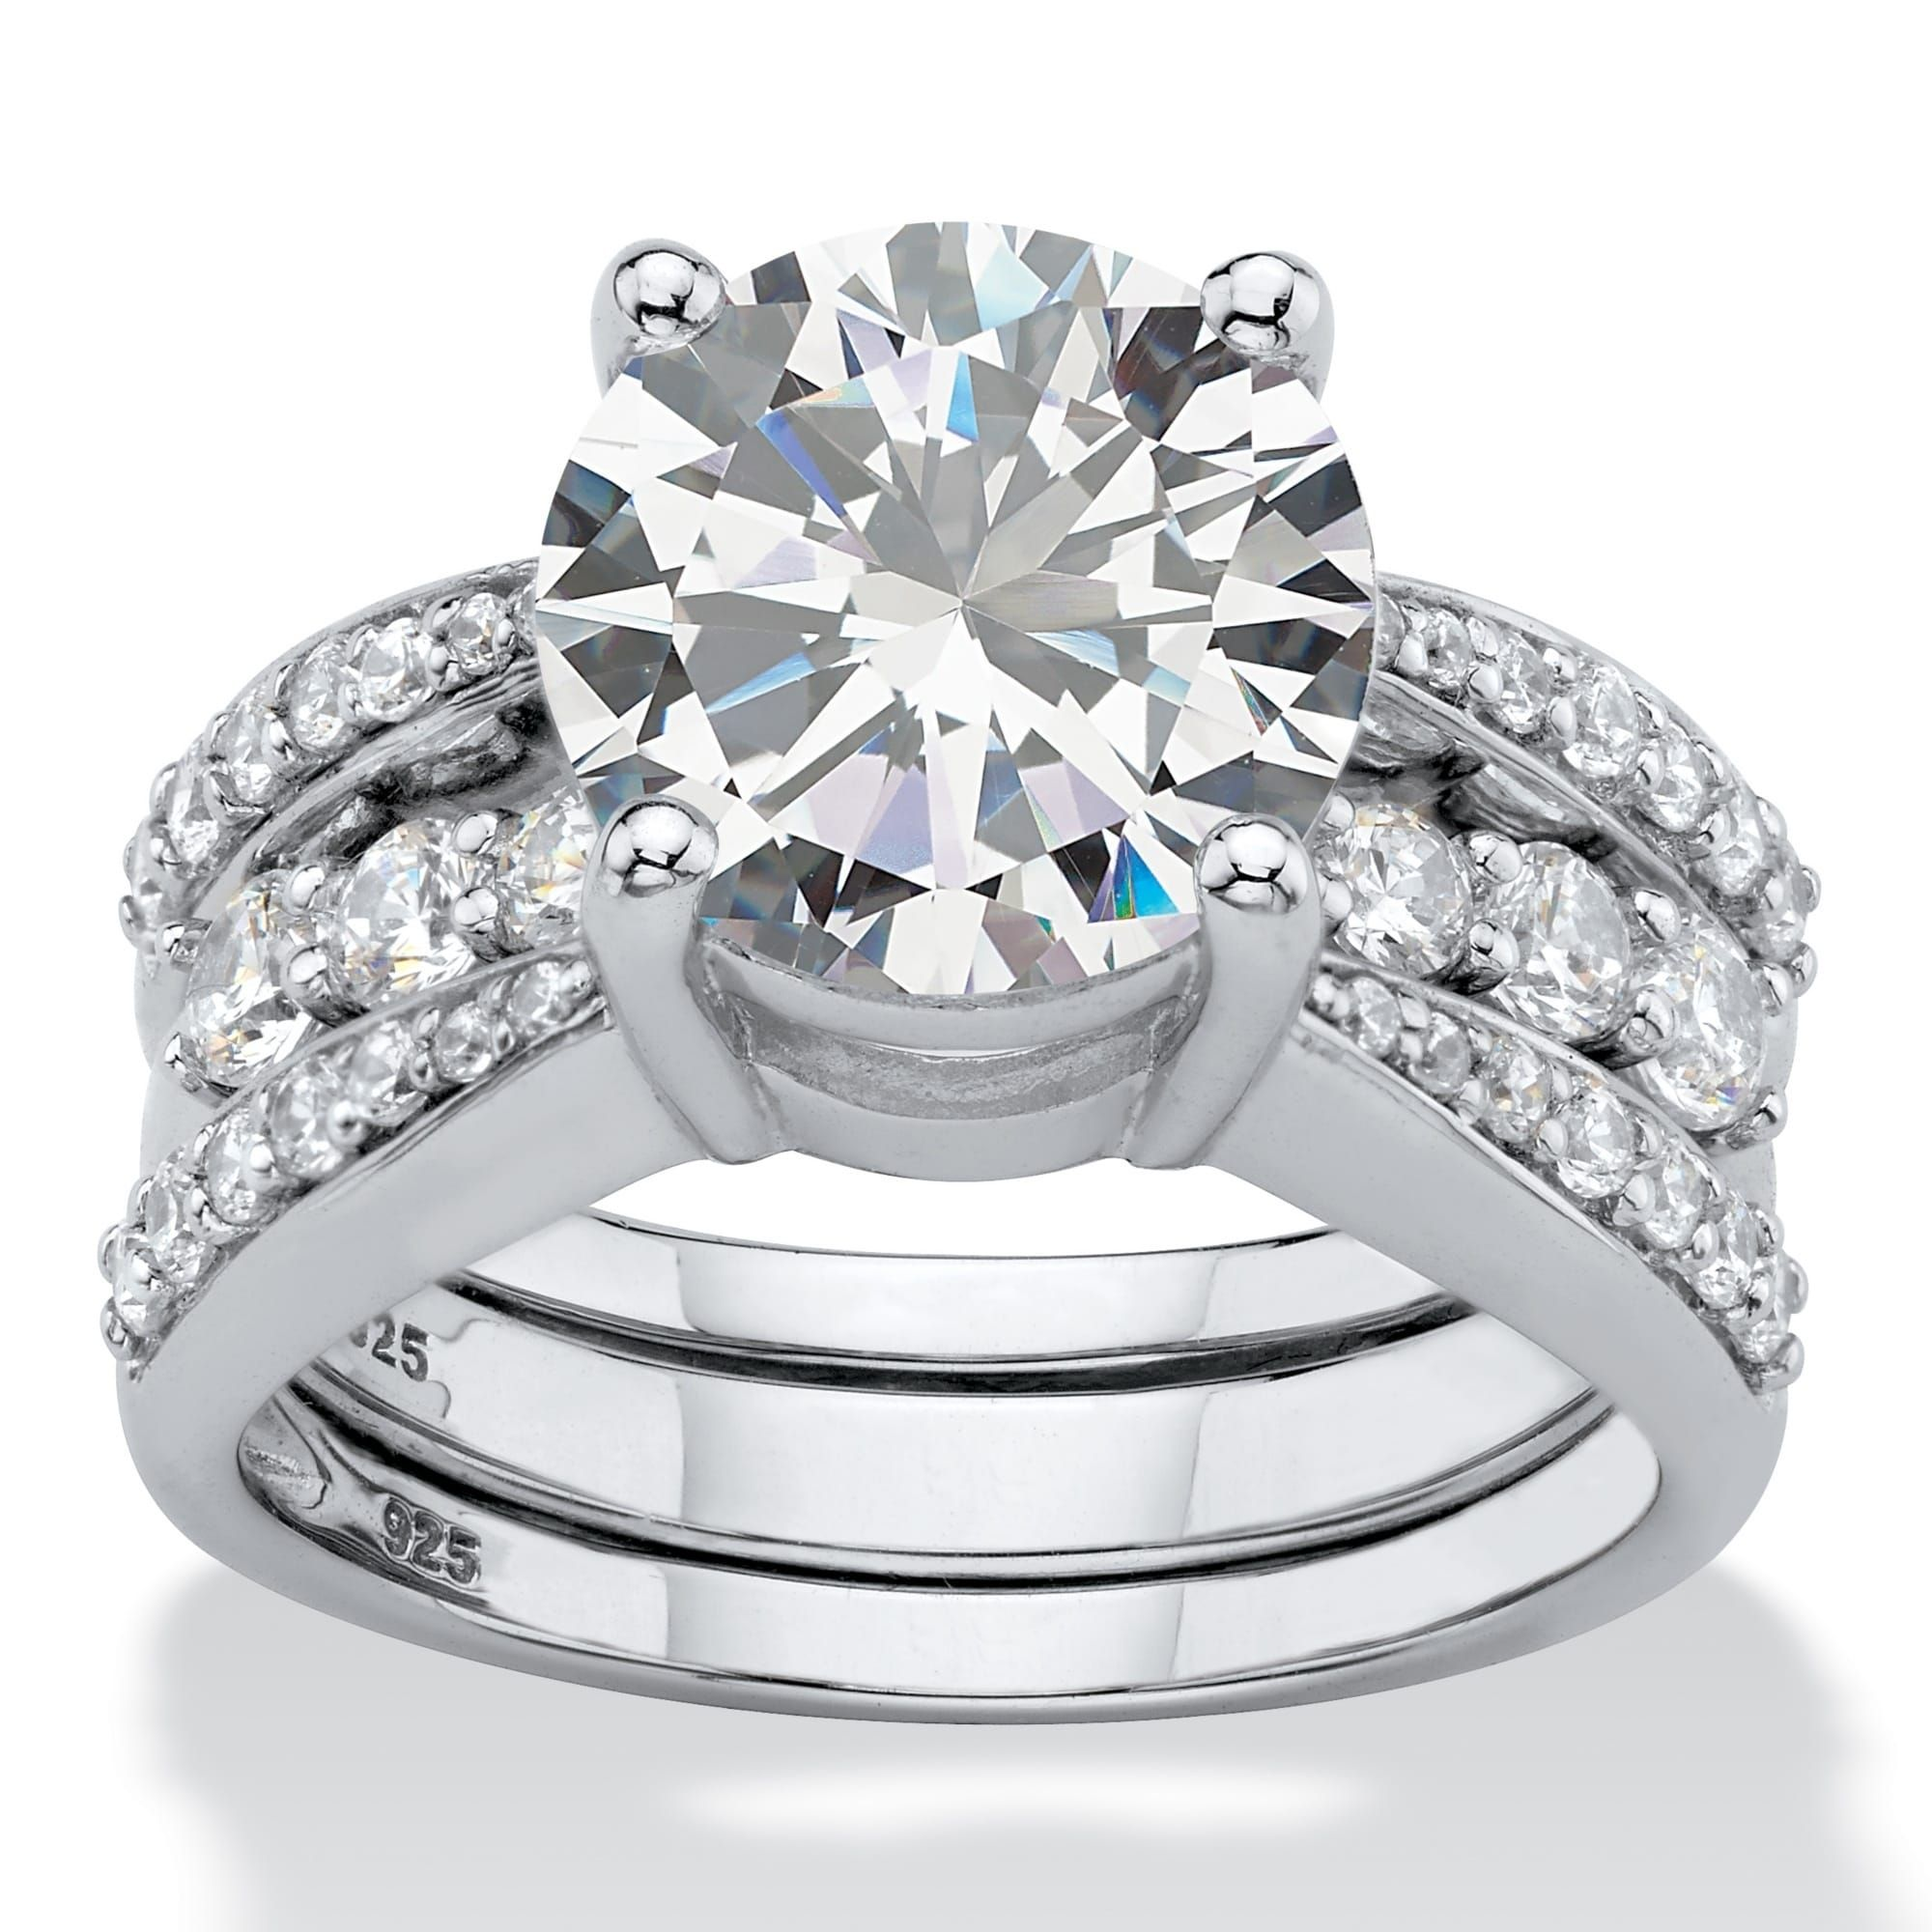 Platinum over Sterling Silver Cubic Zirconia Bridal Ring